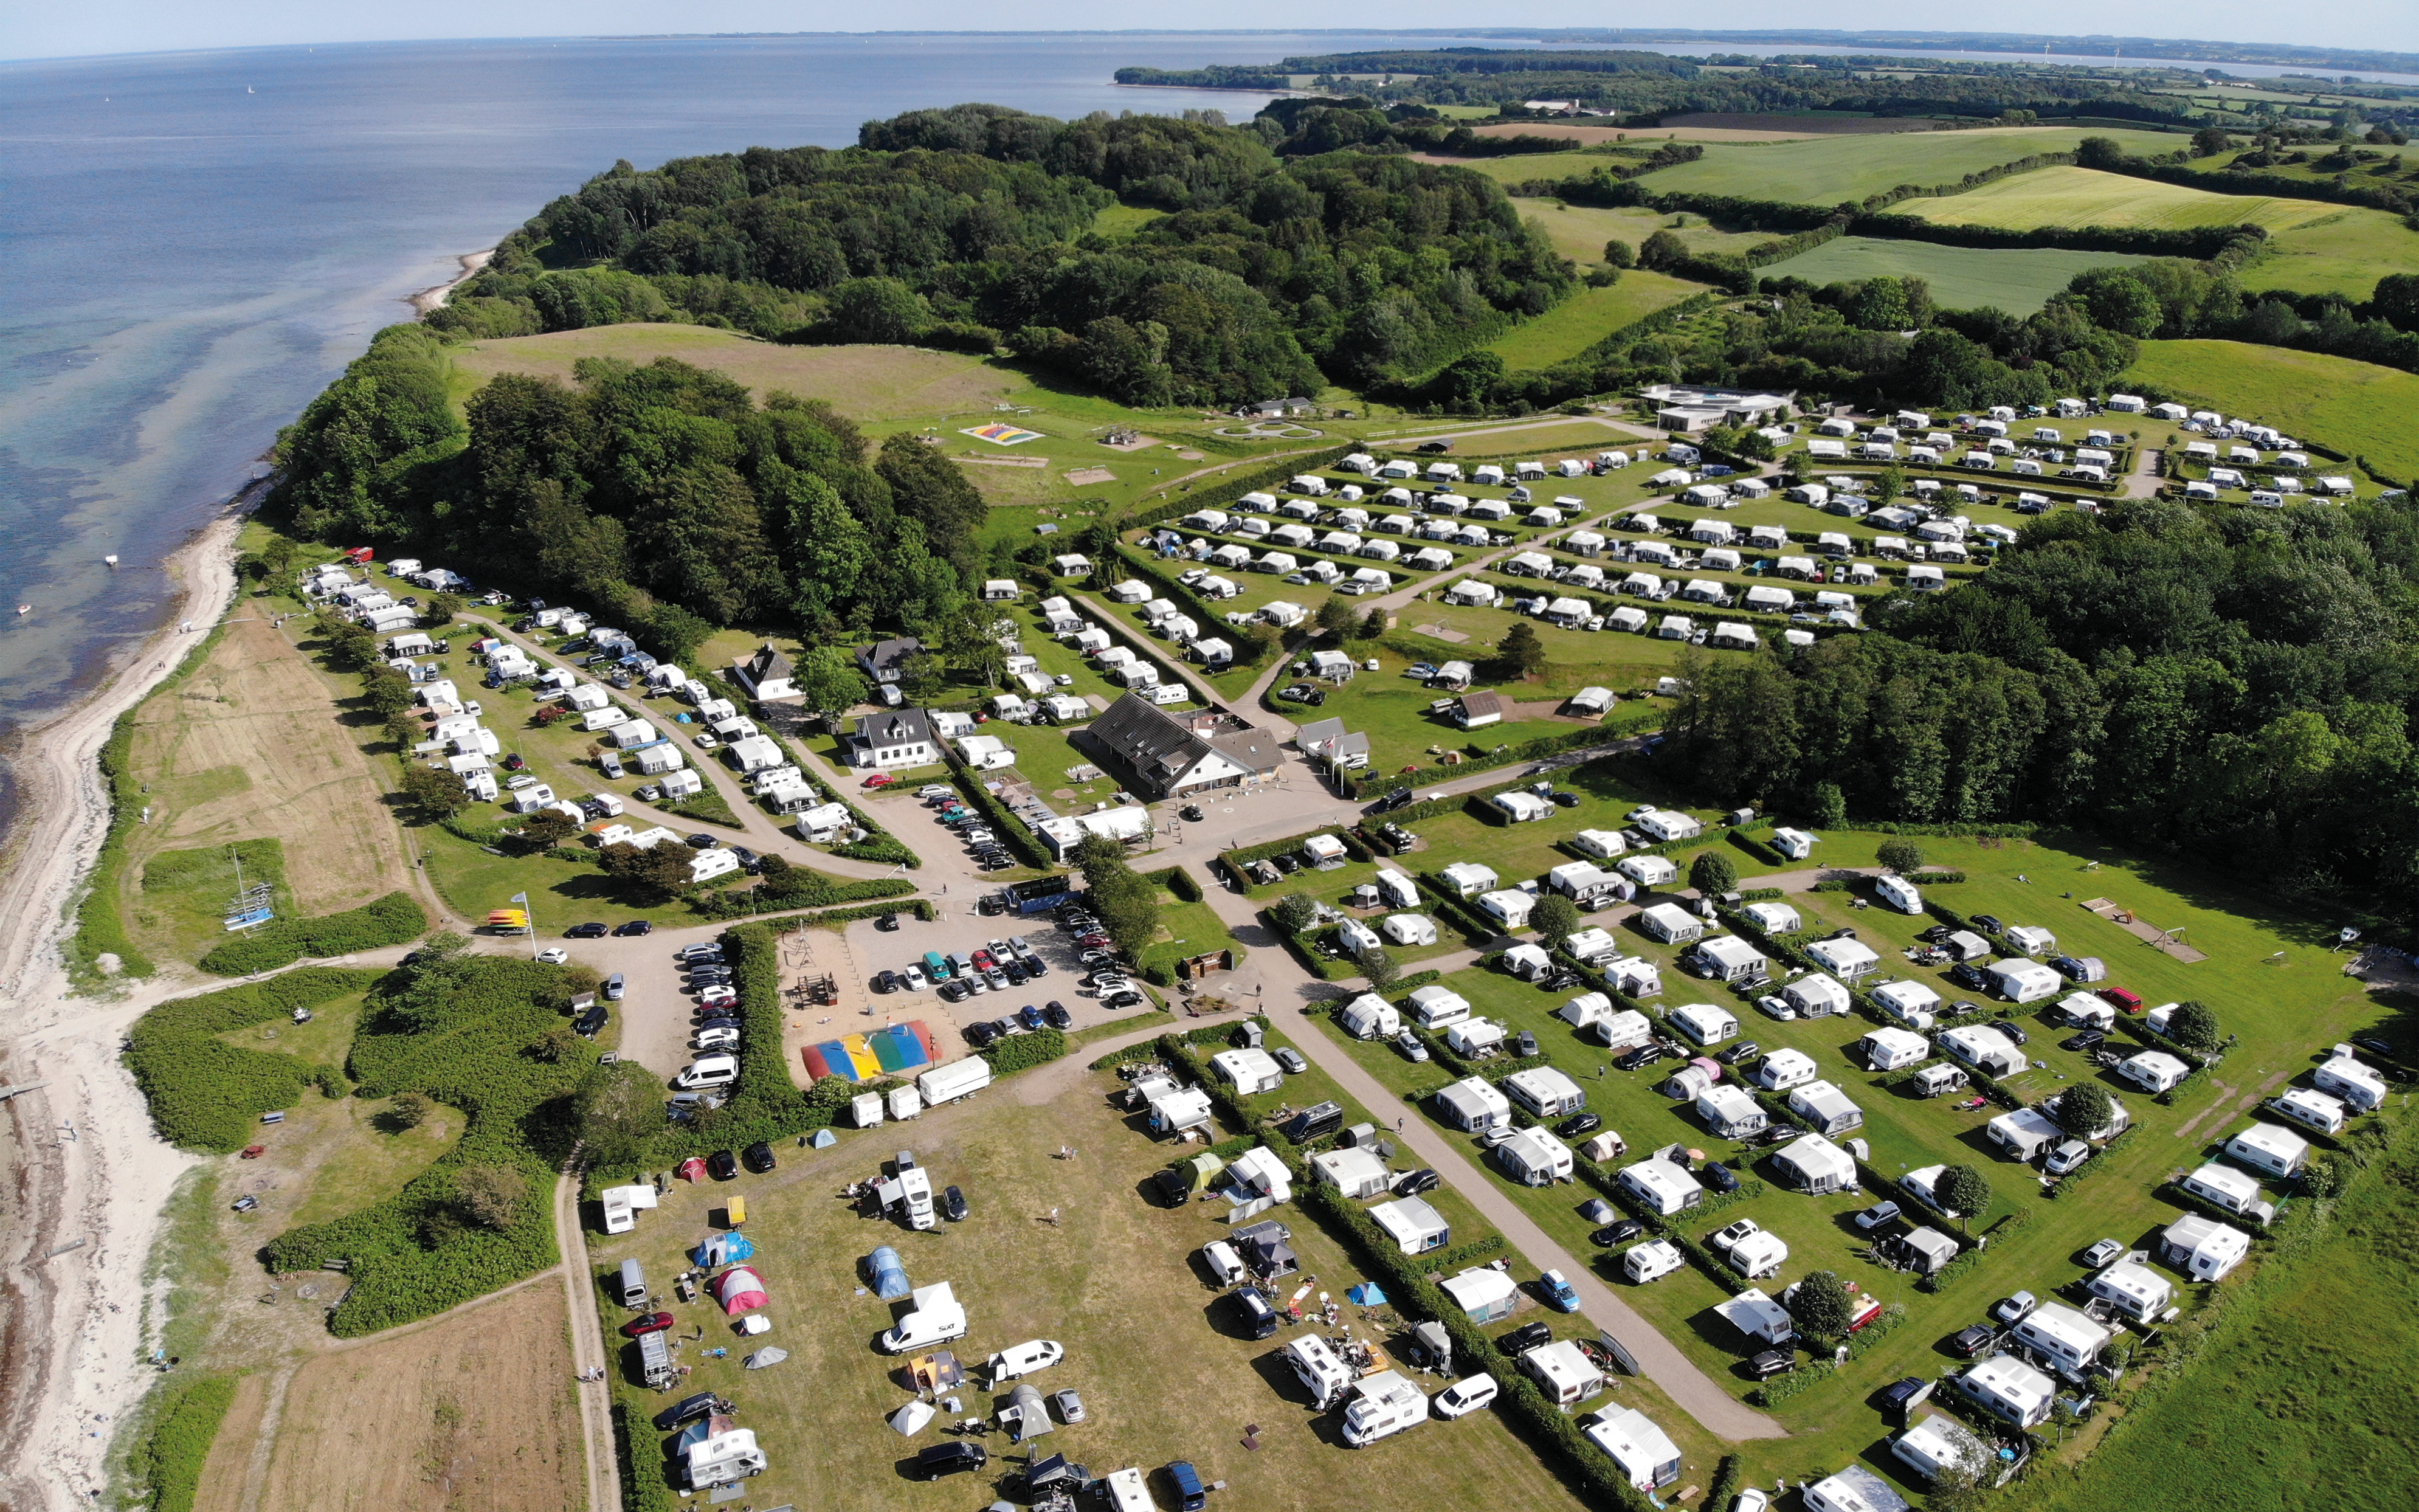 Aerial photo and overview over the 6 different camping areas at Gammelmark Strand Camping